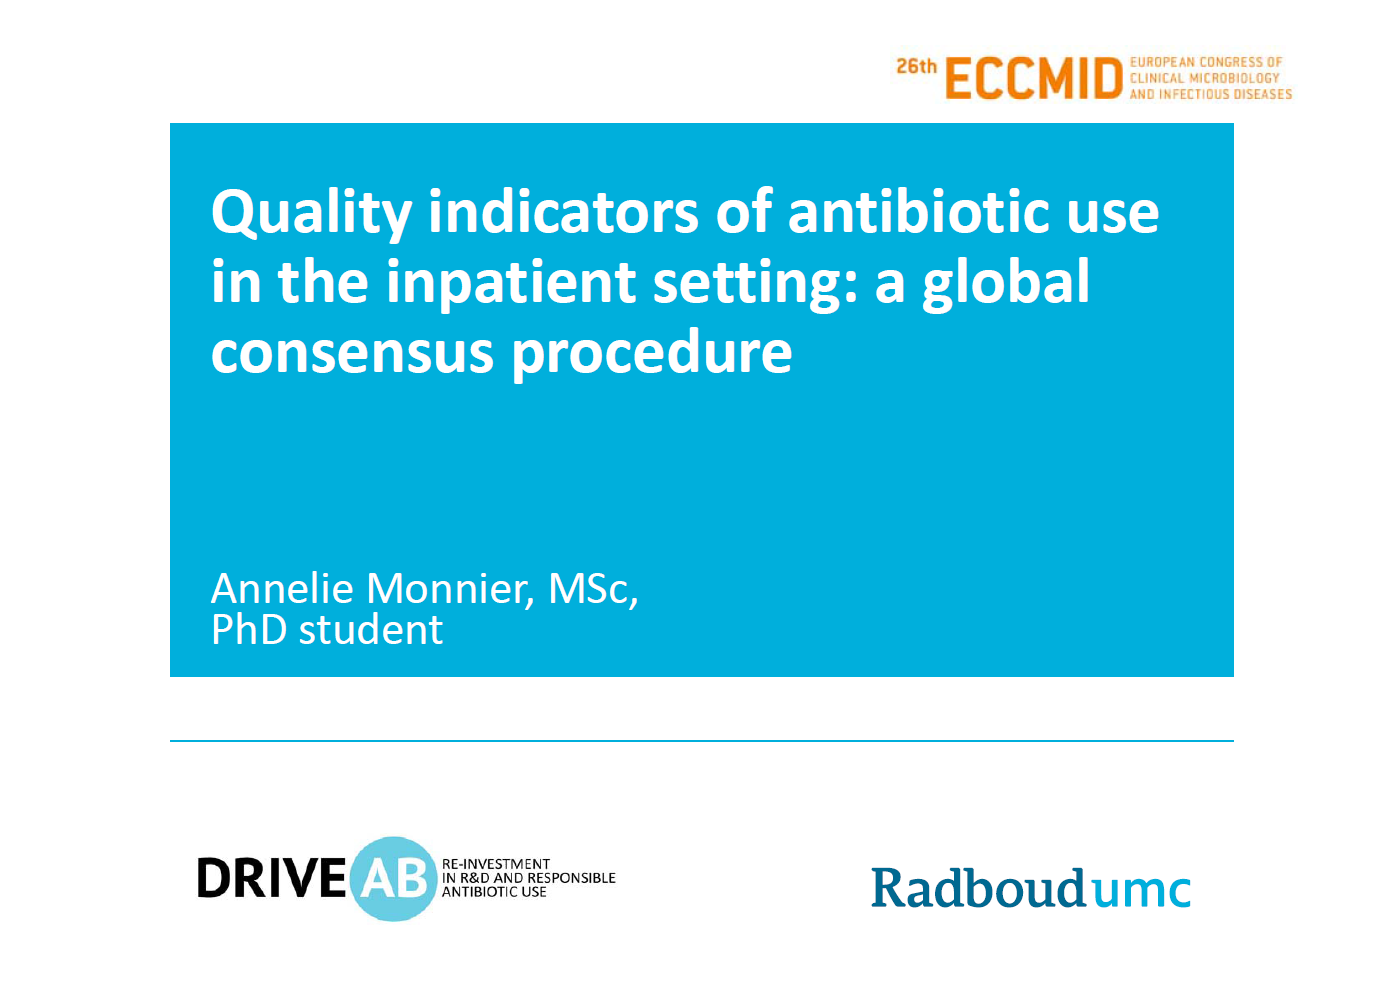 ECCMID presentation quality indicators 2016